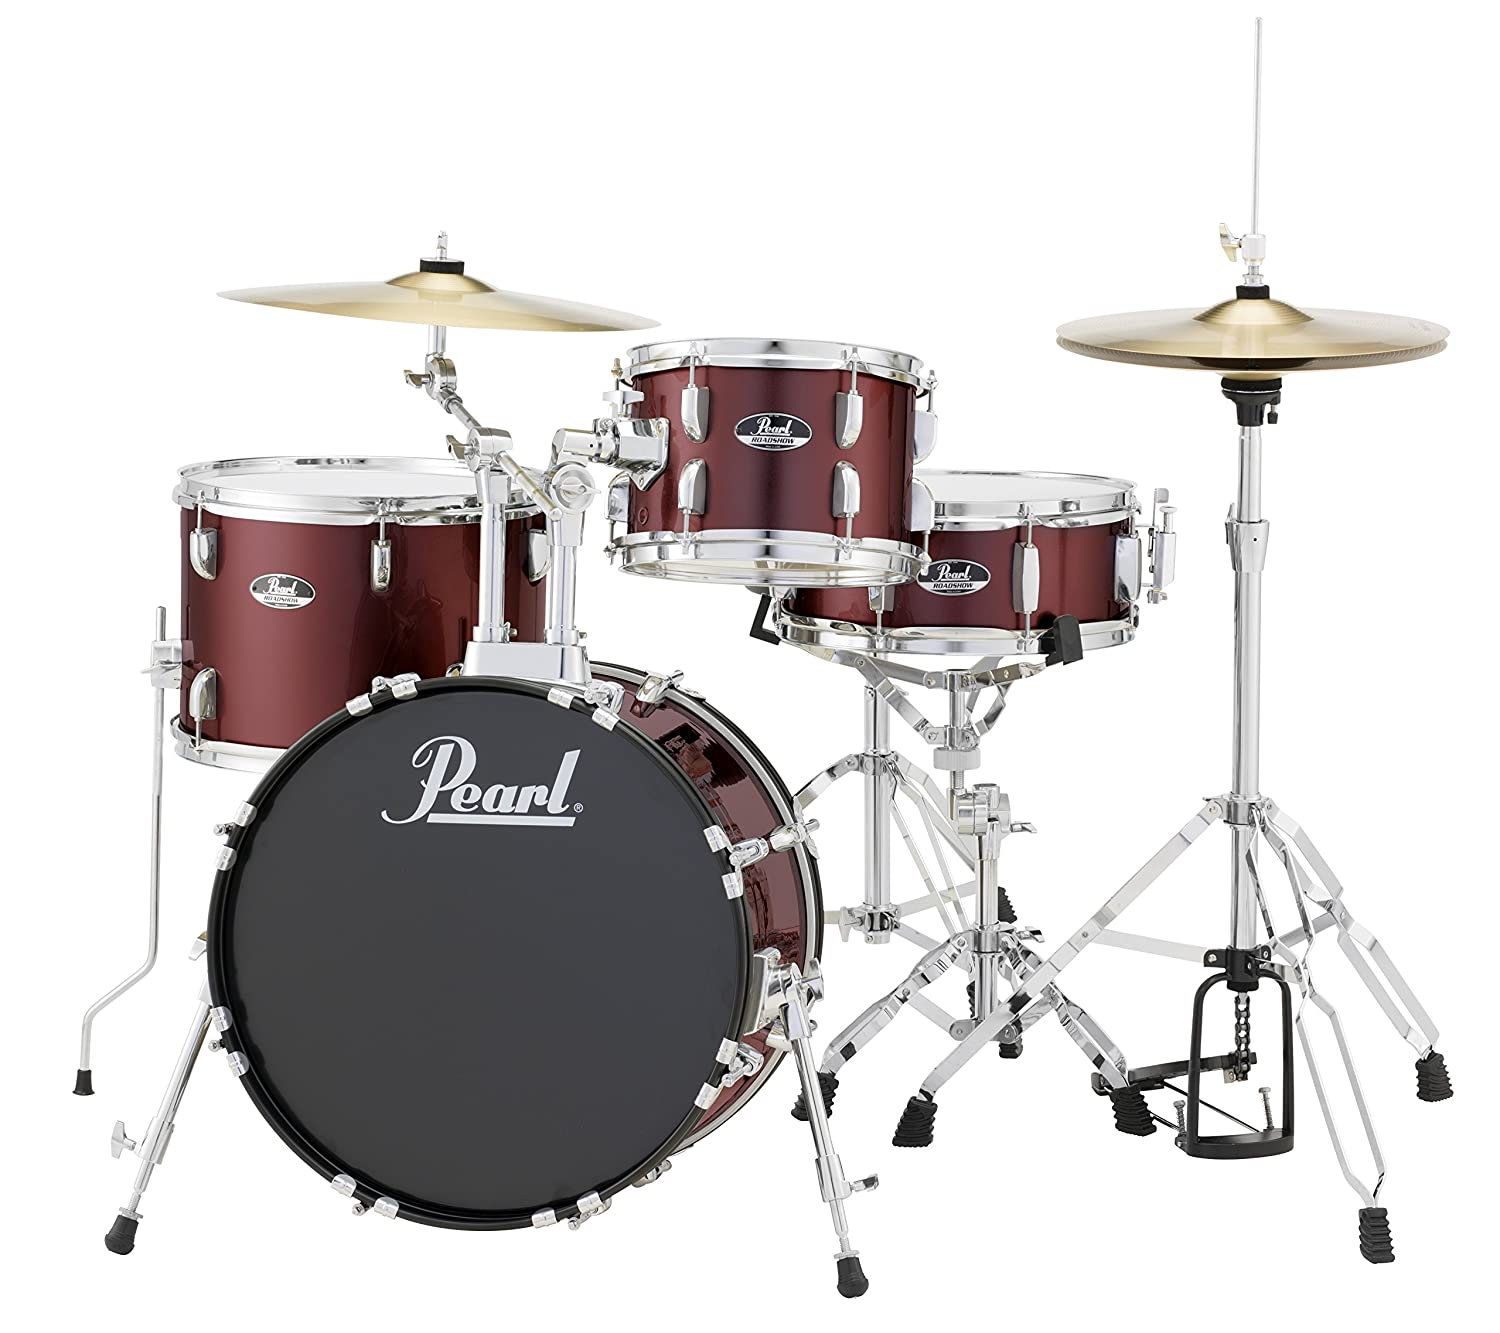 Pearl RS525SCC91 Roadshow 5-Piece Drum Set, Wine Red Pearl Corporation